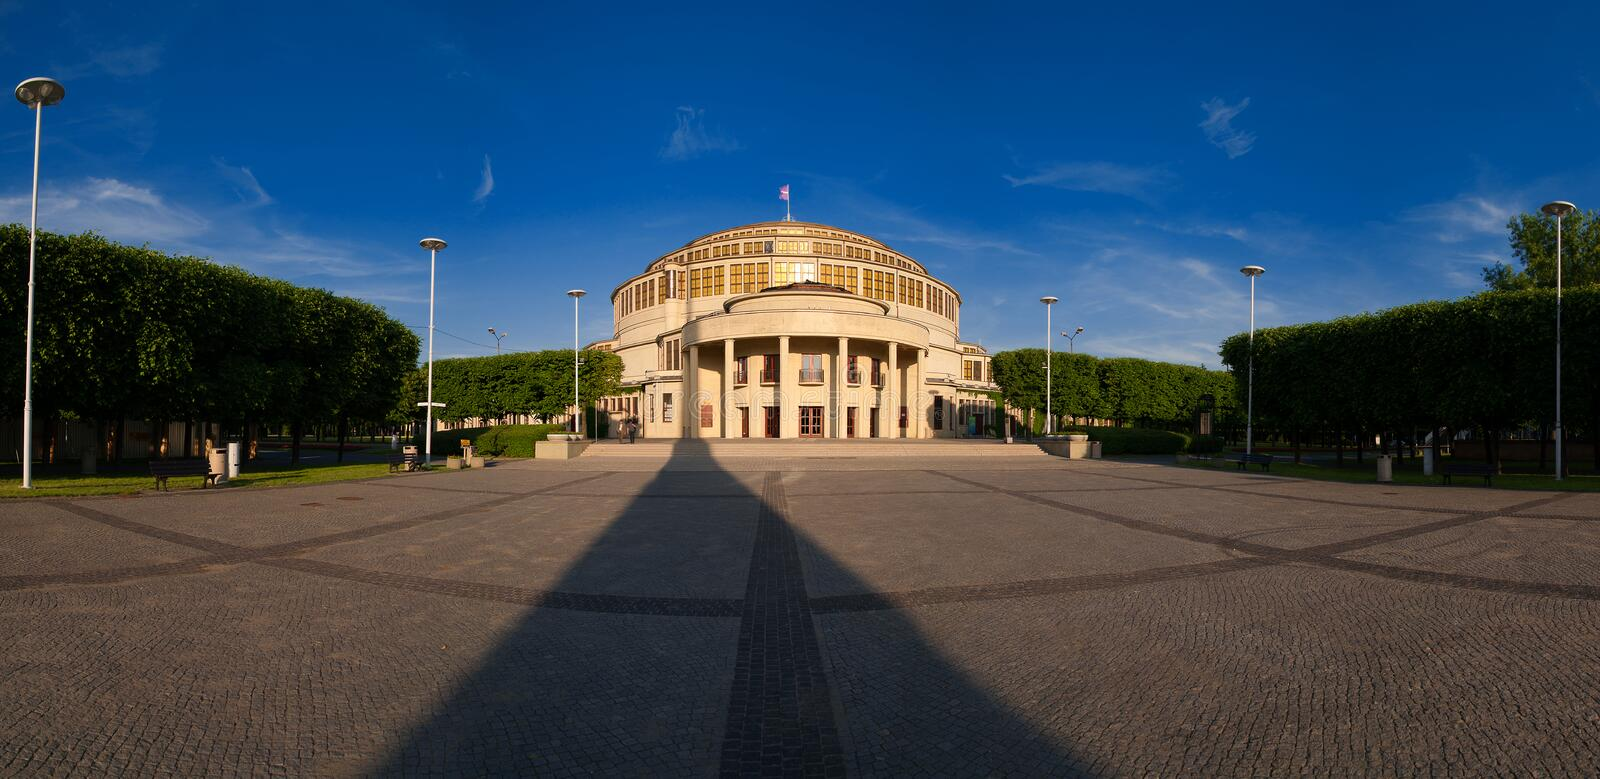 Events Hall - Wroclaw royalty free stock photo